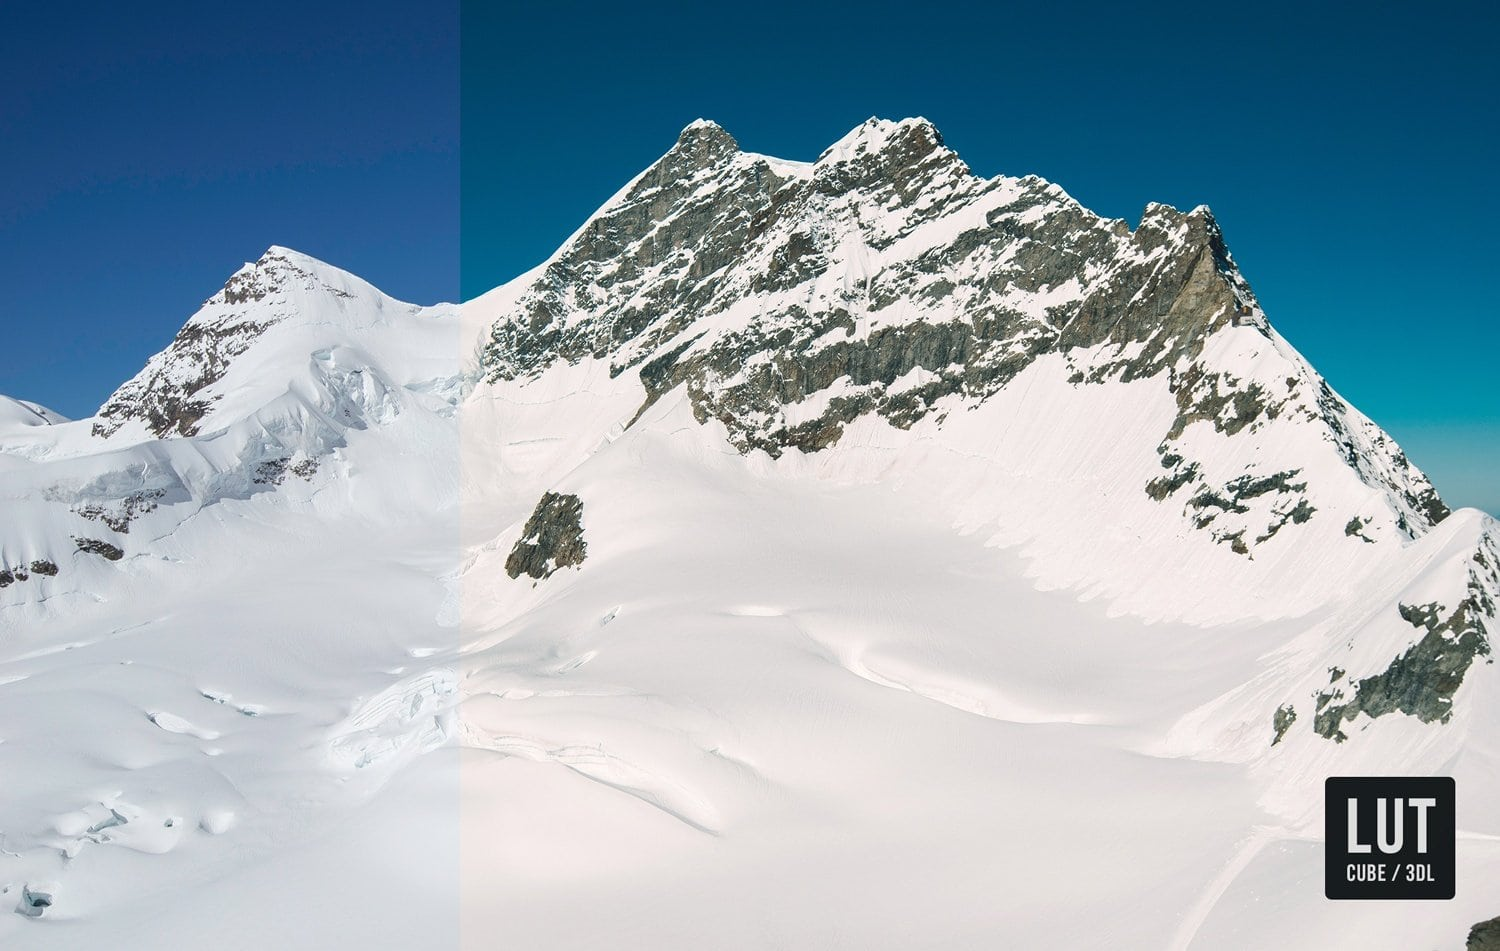 Free-Color-Lookup-Table-Summit-Before-After-LUTs-CUBE-3DL-Presetpro.com